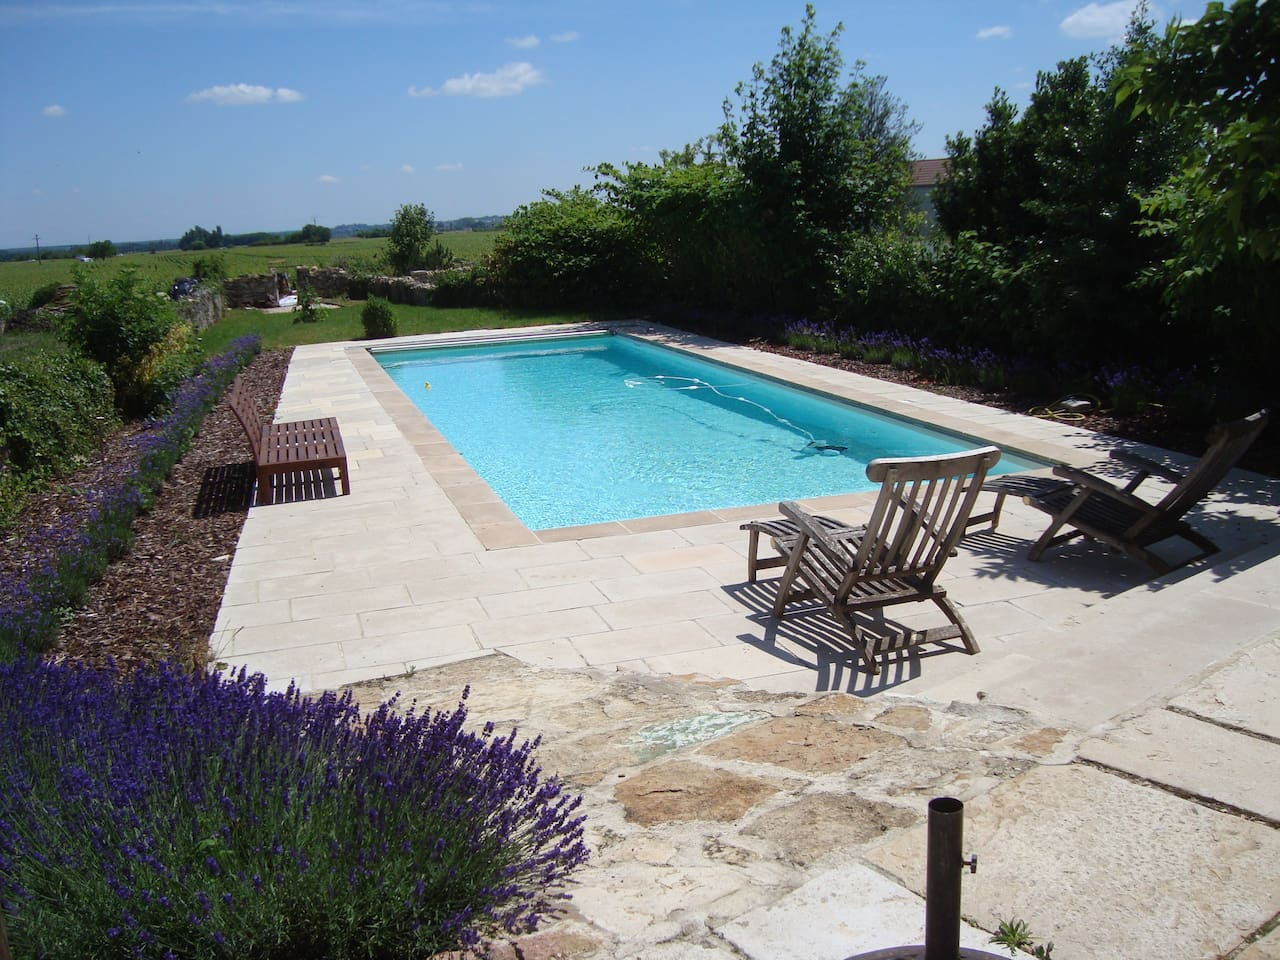 Heated outdoor pool, inviting for young and old!